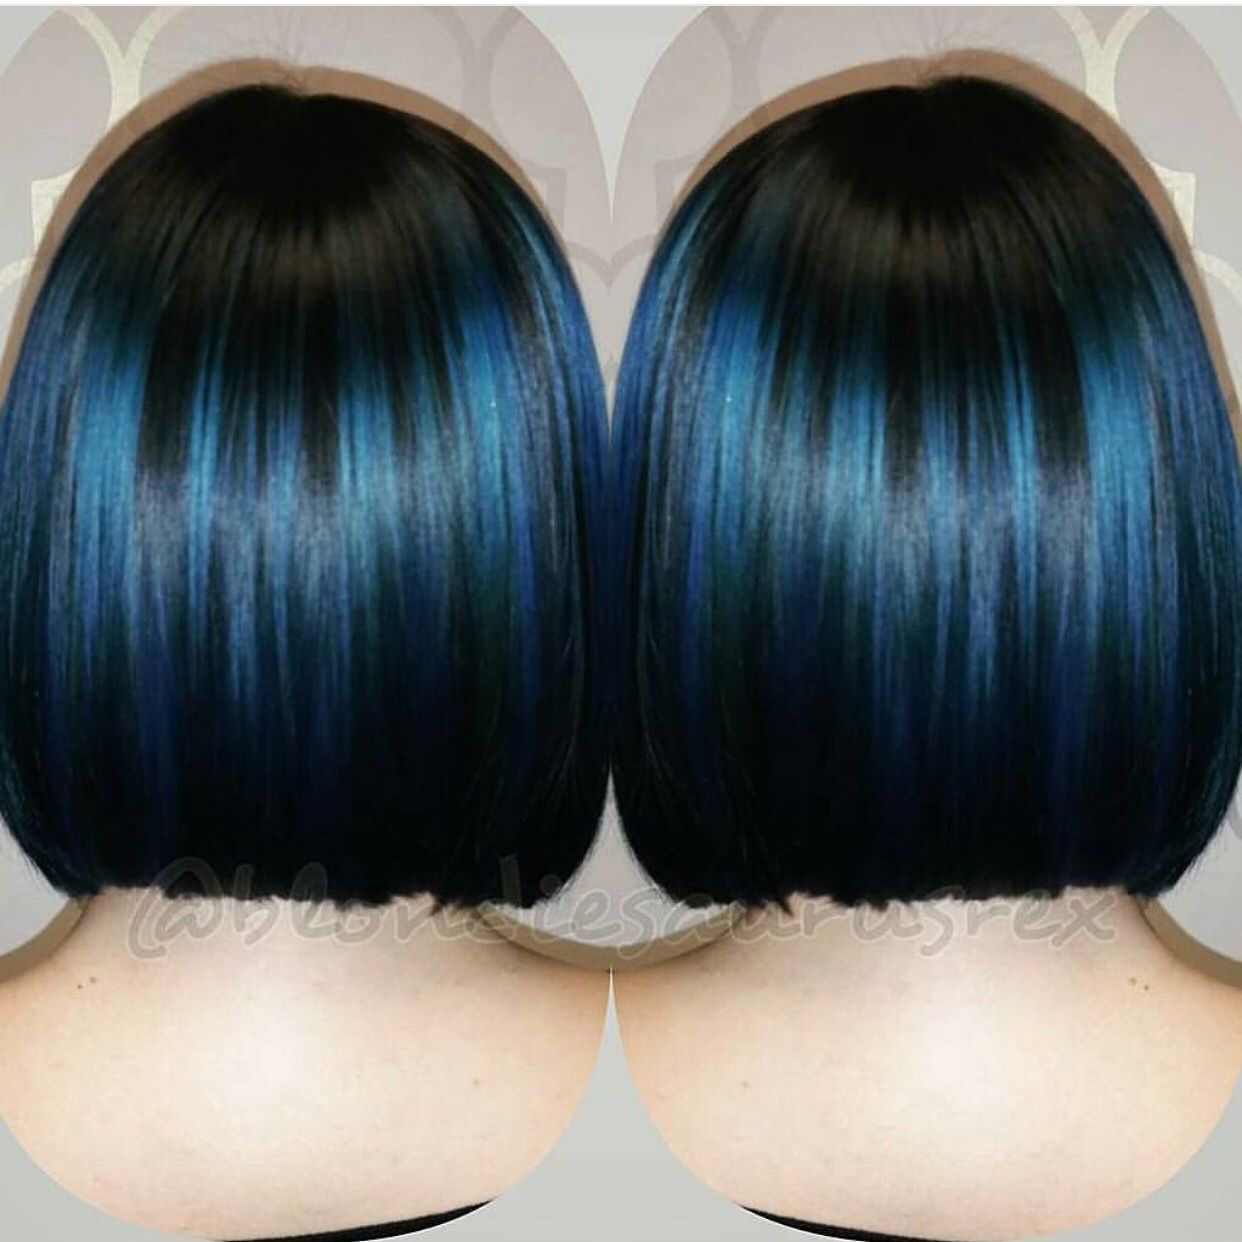 Black Bob Hairstyle Bob Haircut With Royal Blue Highlights Hair Painting By Michelle Saunders Hotonbeauty Com Denim Hair Indigo Hair Short Blue Hair